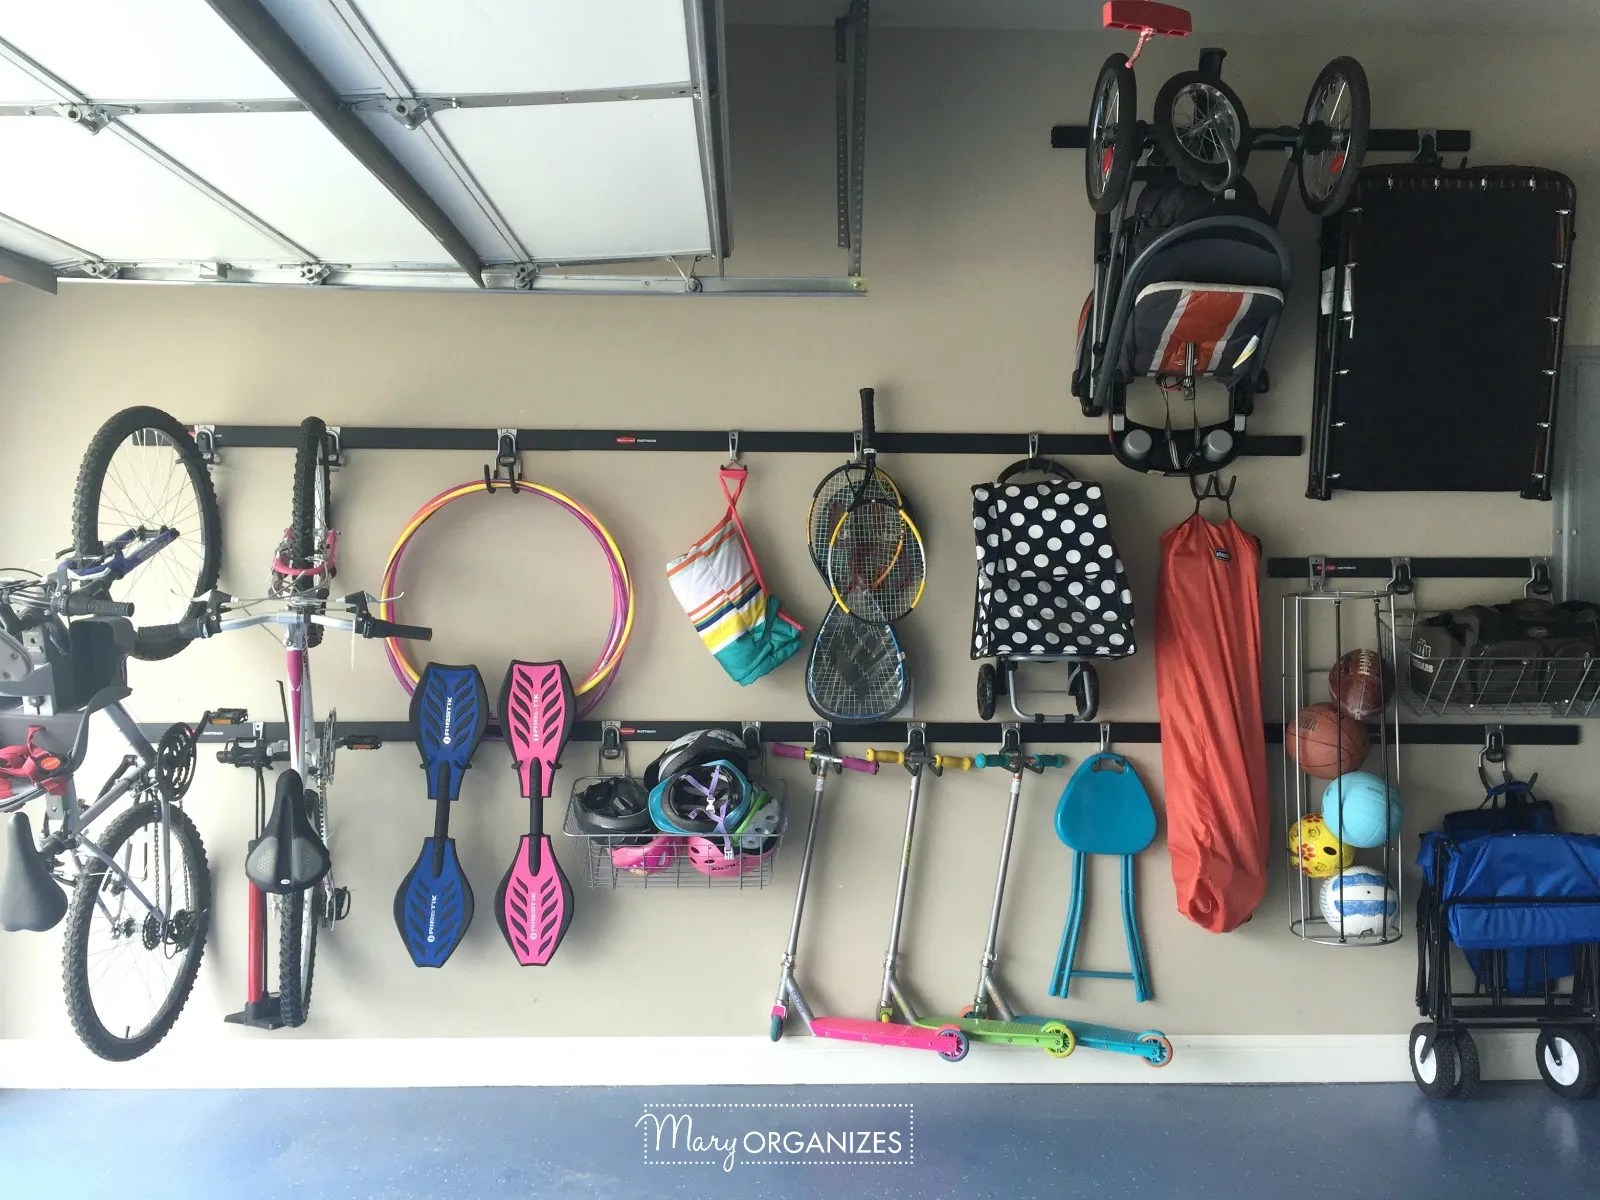 Garage Organizing - How to hang bikes scooters ripsticks balls and more -g9